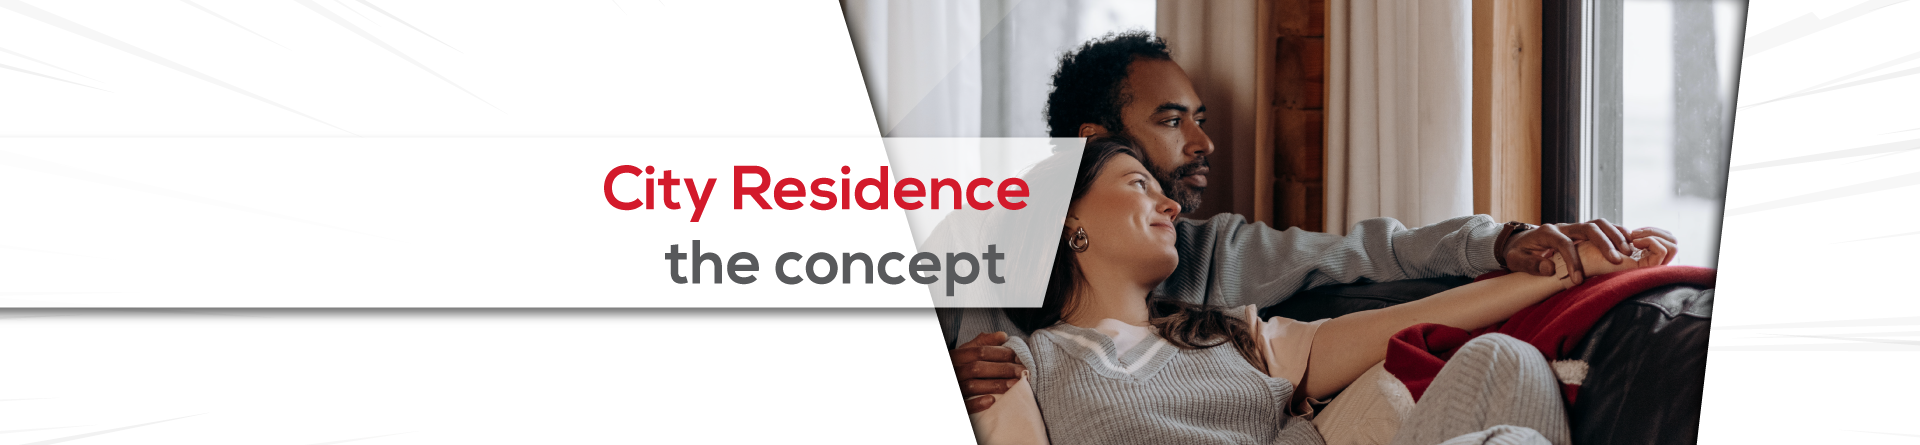 Furnished apartments in hotel residences: the City Residence concept